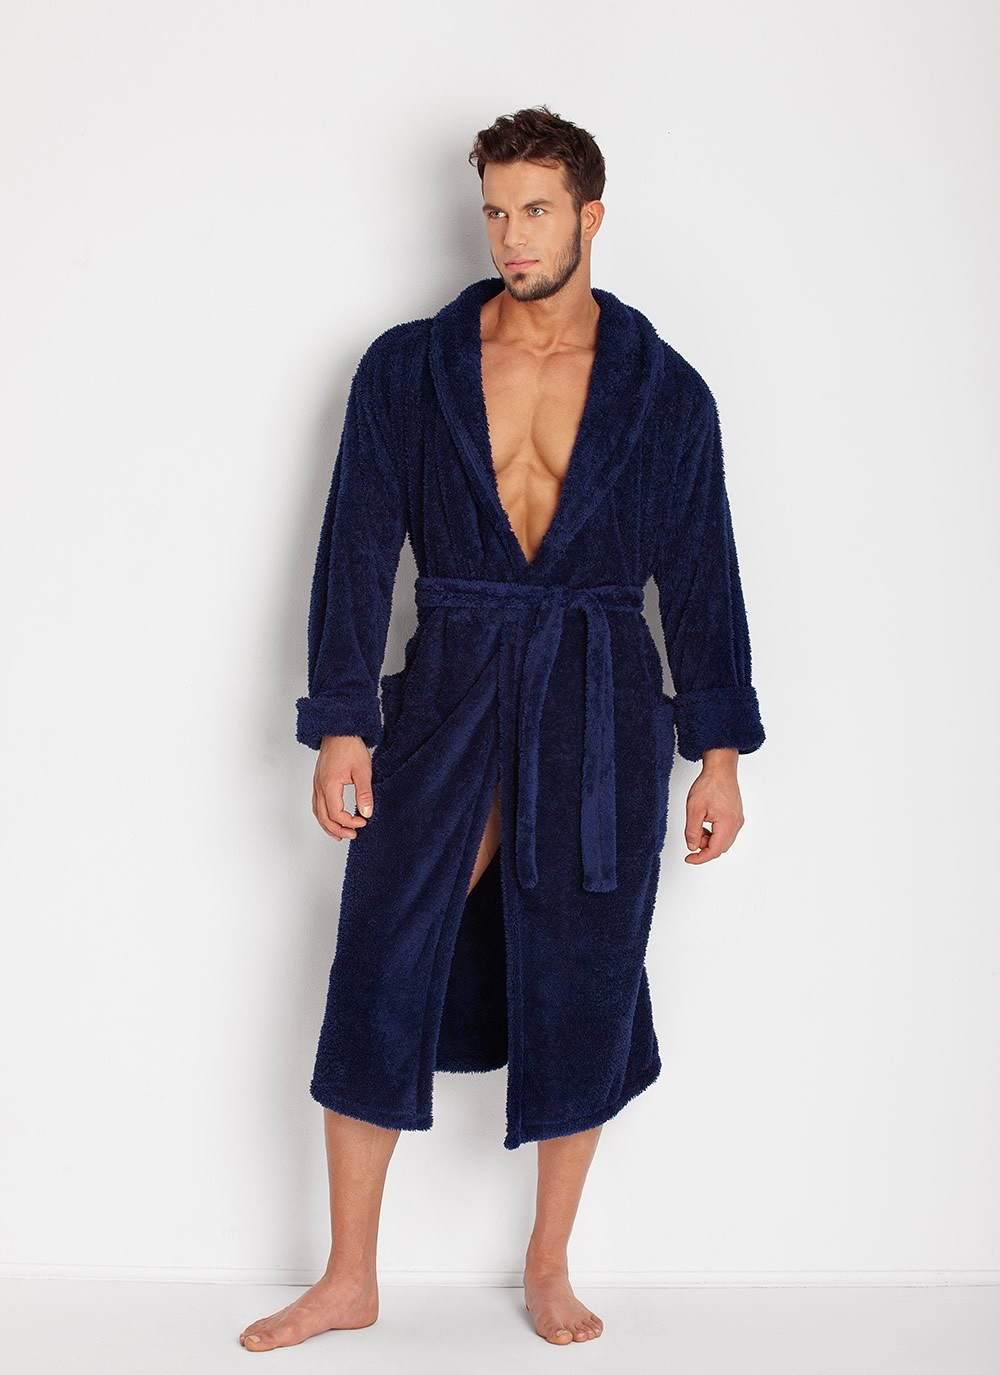 Men's Robe - Navy Blue